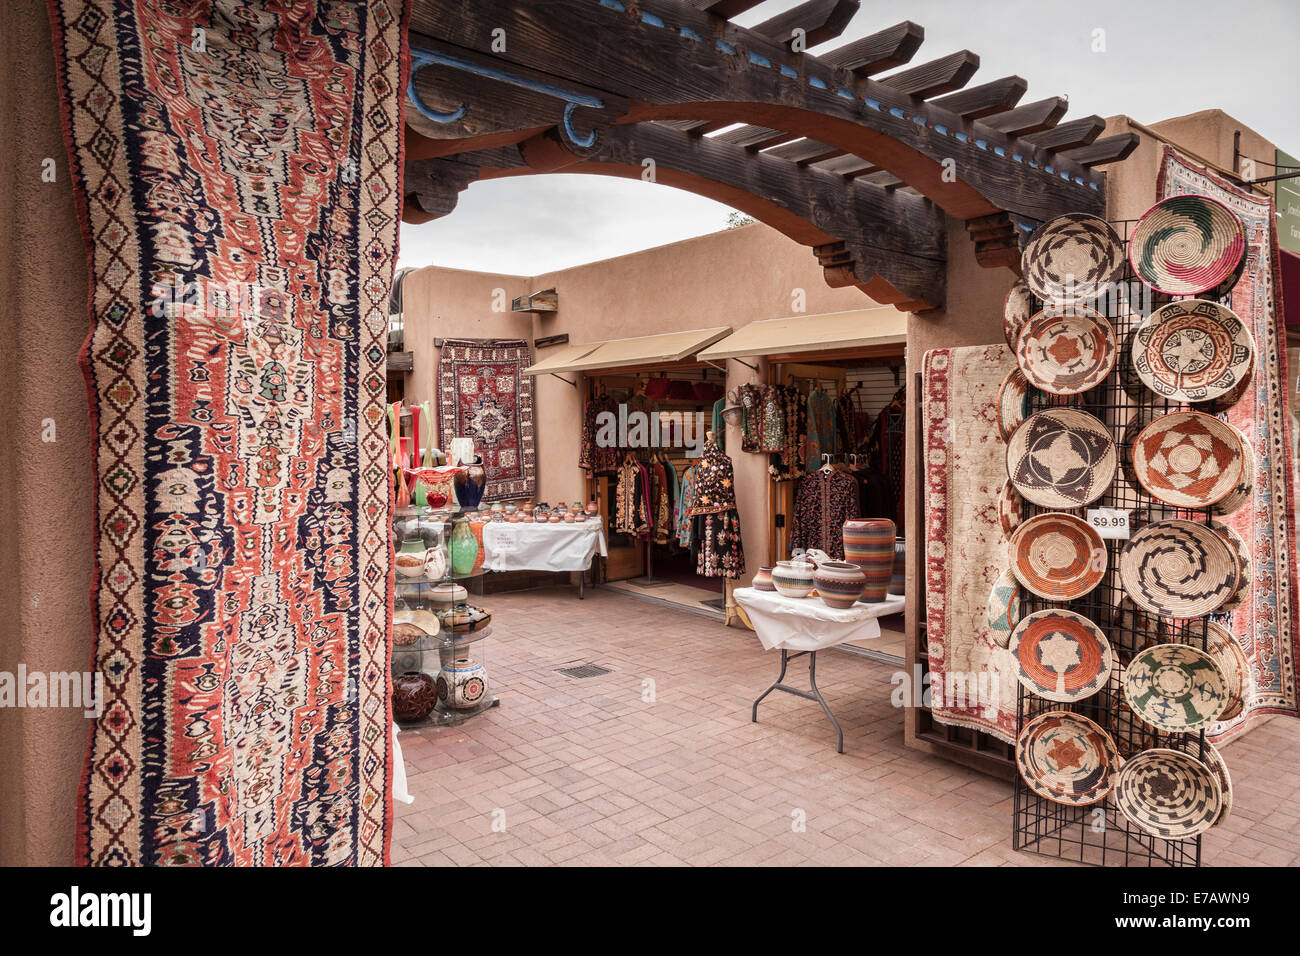 Shop selling examples of traditional crafts to tourists in Santa Fe, New Mexico. - Stock Image